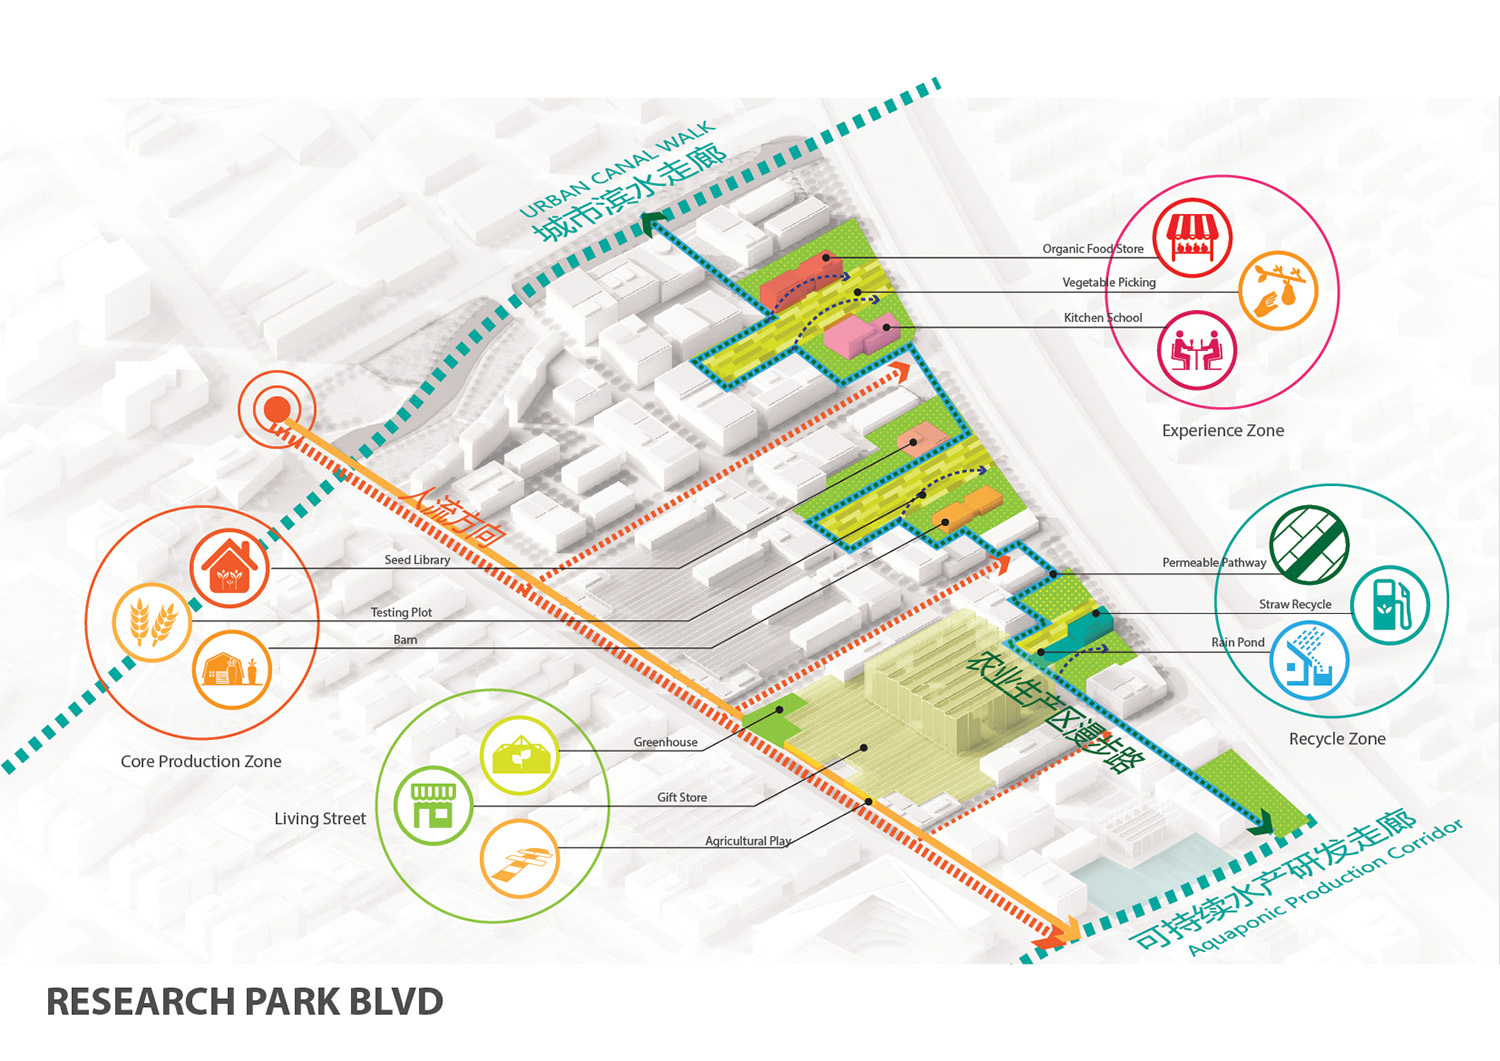 RESEARCH PARK BLVD AND EXPERIENCE ITINERARIES }